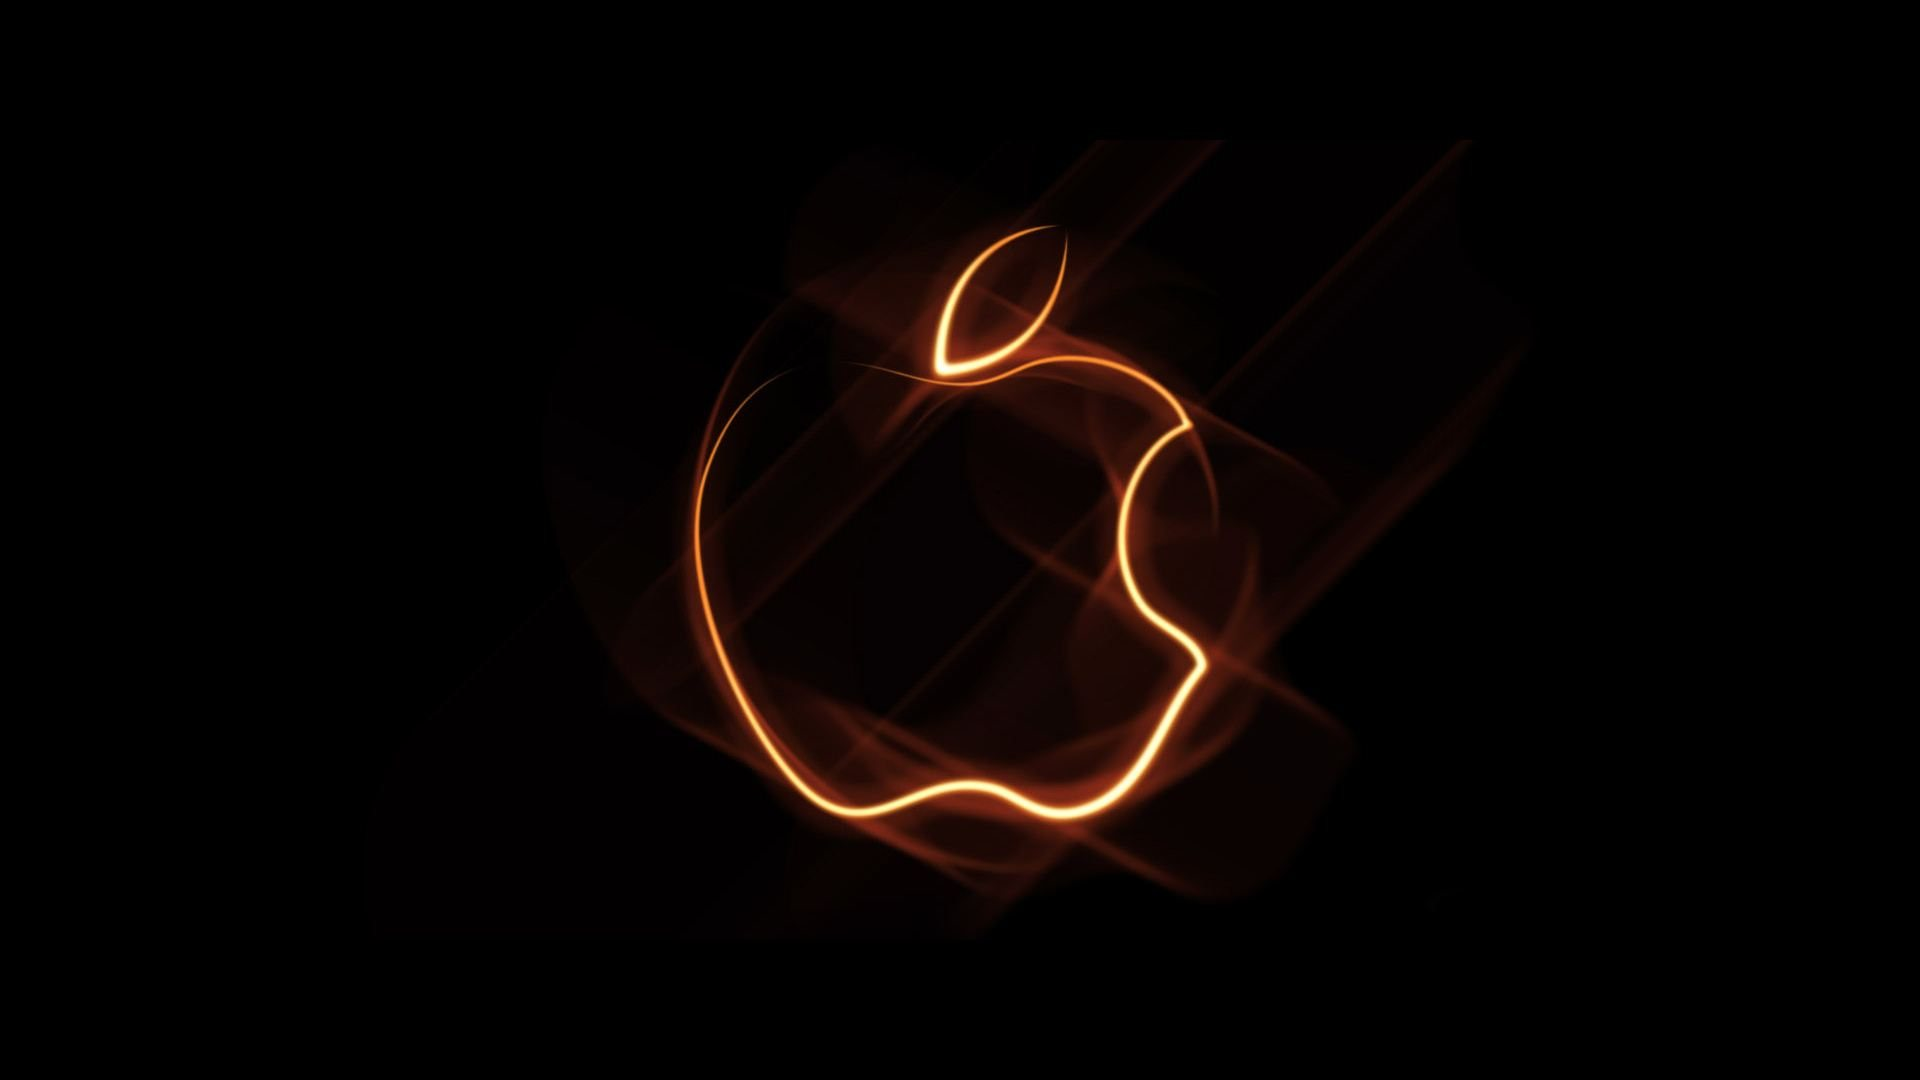 Free Wallpapers Hd Wallpapers Desktop Wallpapers Flaming Apple Logo